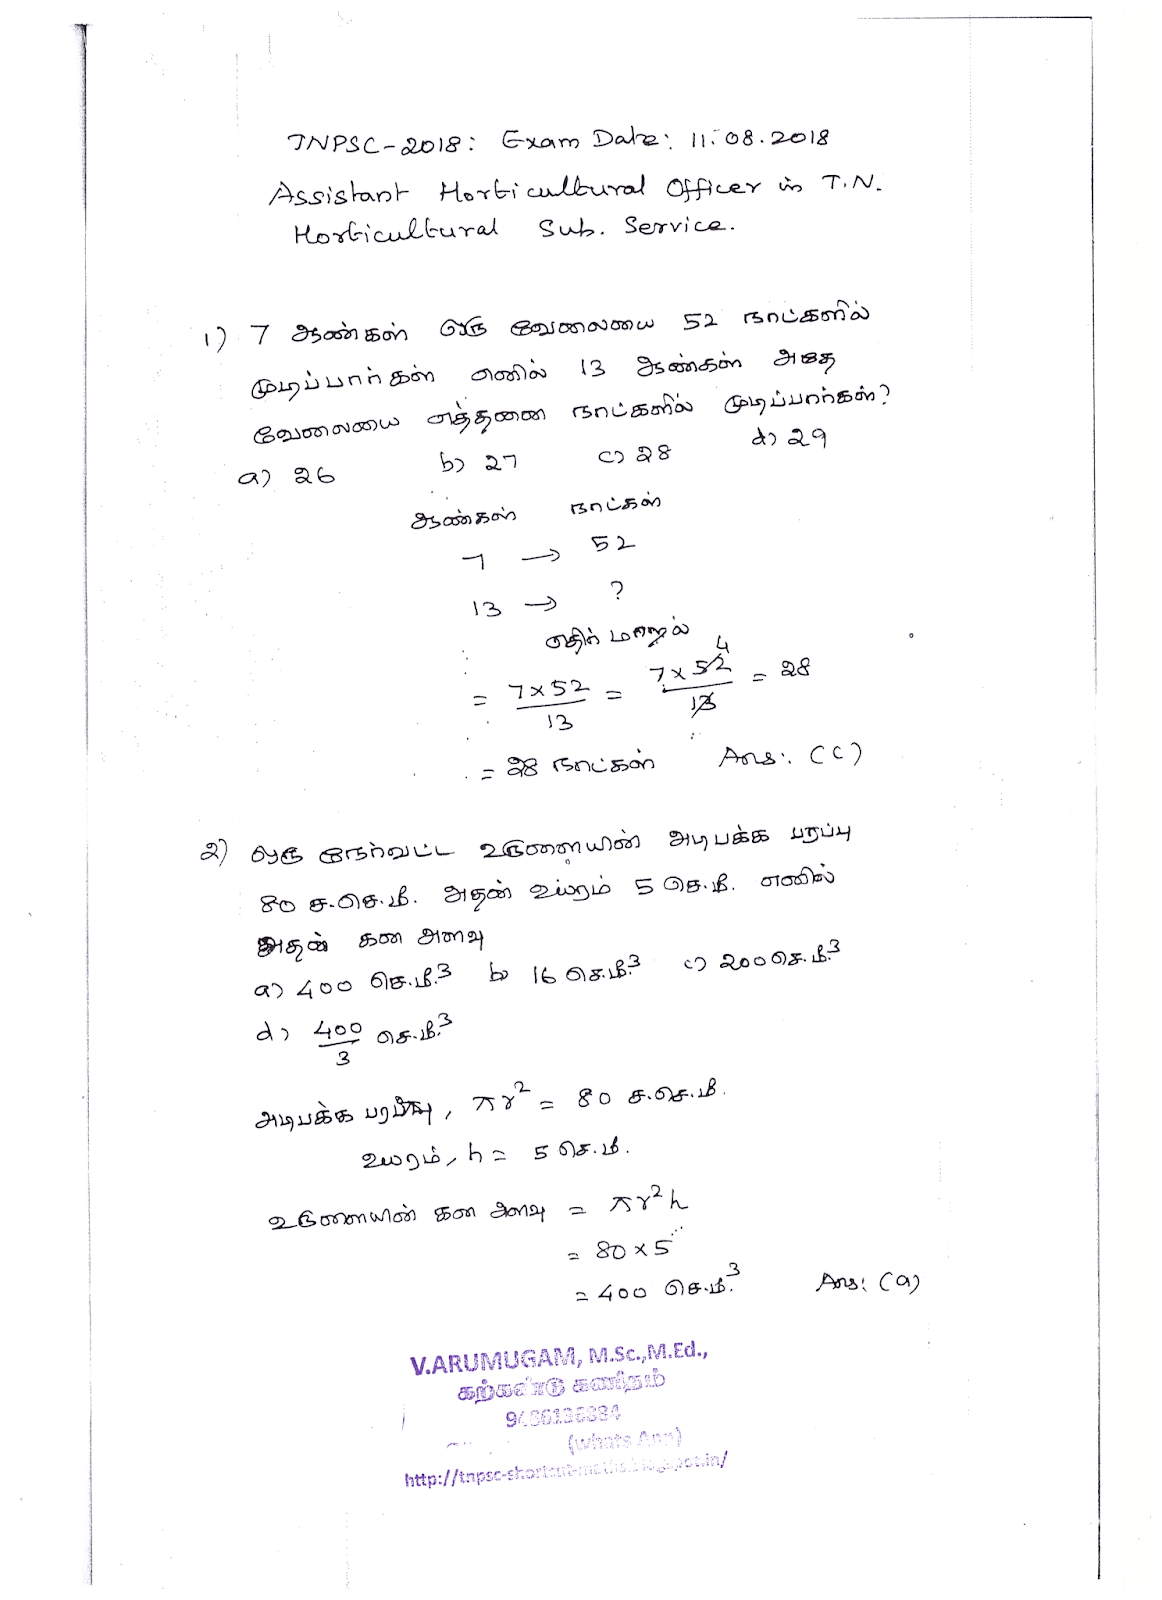 TNPSC-2018- Q-10-Assistant Horticultural Officer in TN Horticultural Subordinate Service Exam-EXAM DATE: 11.08.2018